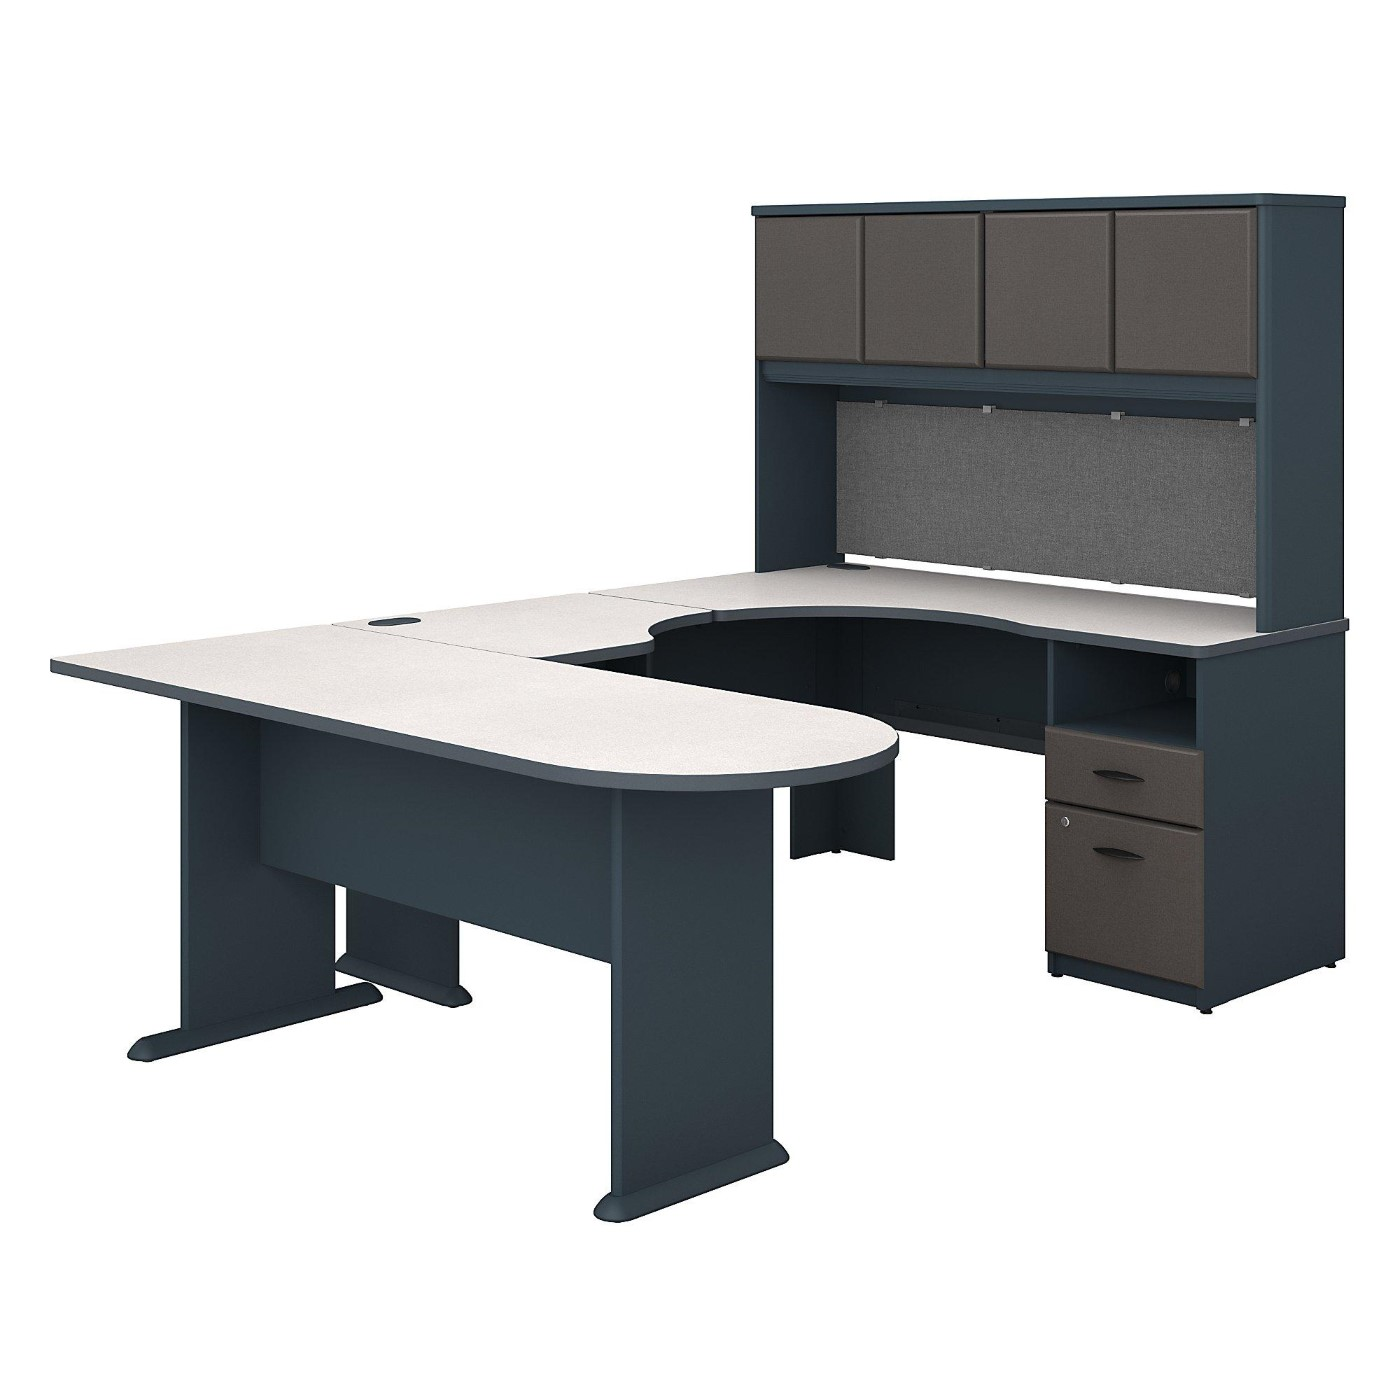 BUSH BUSINESS FURNITURE SERIES A U SHAPED DESK WITH HUTCH, PENINSULA AND STORAGE. FREE SHIPPING  VIDEO BELOW.